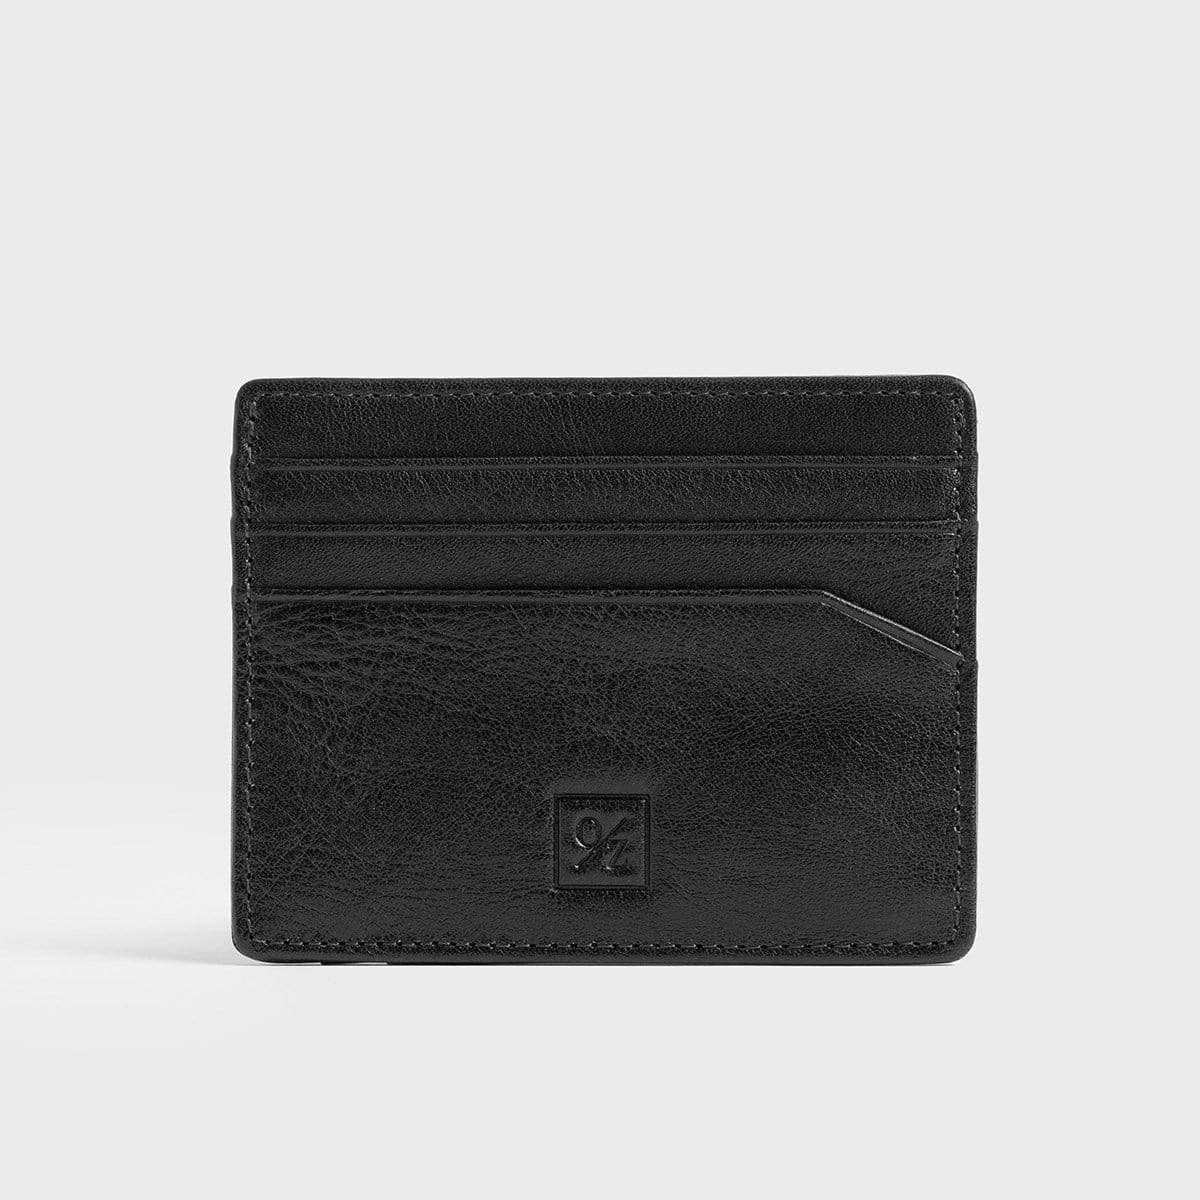 Multi Pockets Latest Men's Leather Slim Wallet